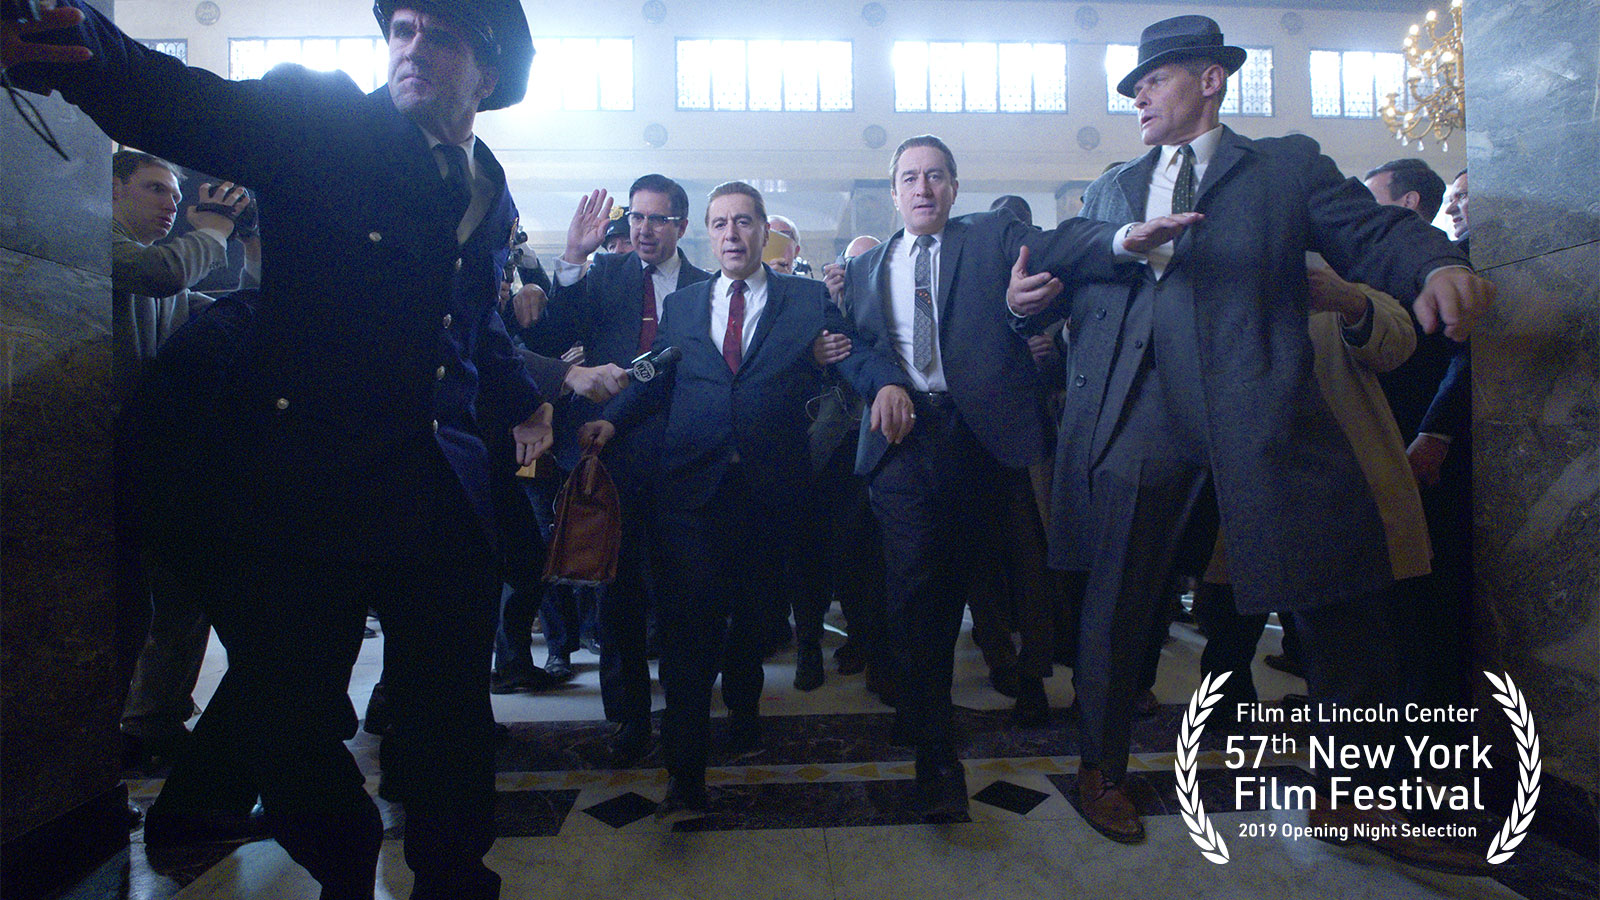 first-look-at-martin-scorseses-the-irishman-which-will-premiere-at-new-york-film-festival2